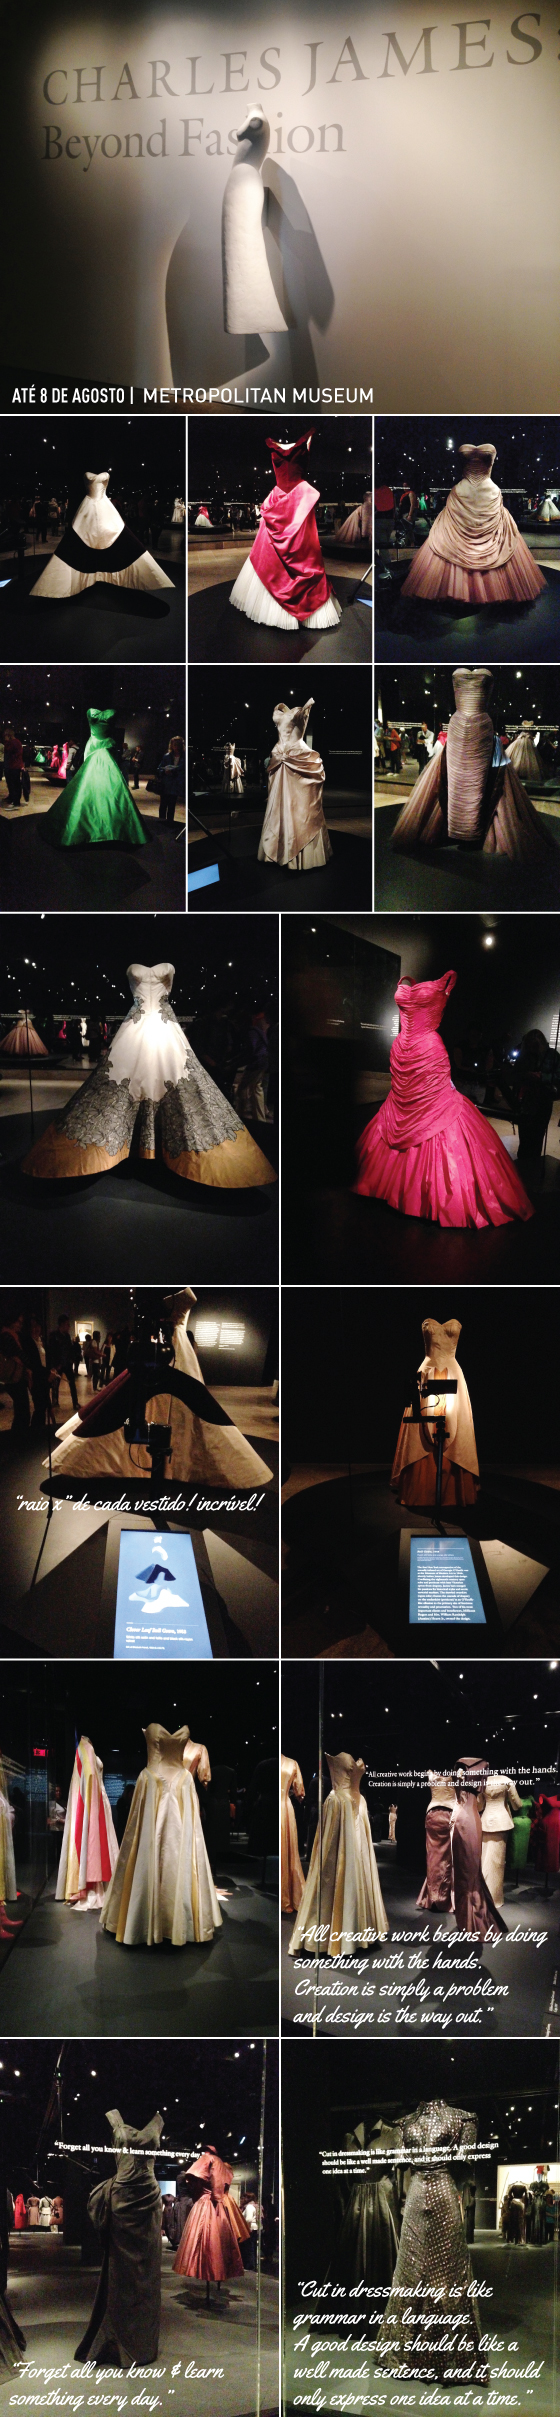 charles-james-ny-new-york-exhibition-viagem-dica-exposicao-met-metropolitan-tips-travel-nova-iorque-museu-moda-fashion-beyond-fashion-fotos-review